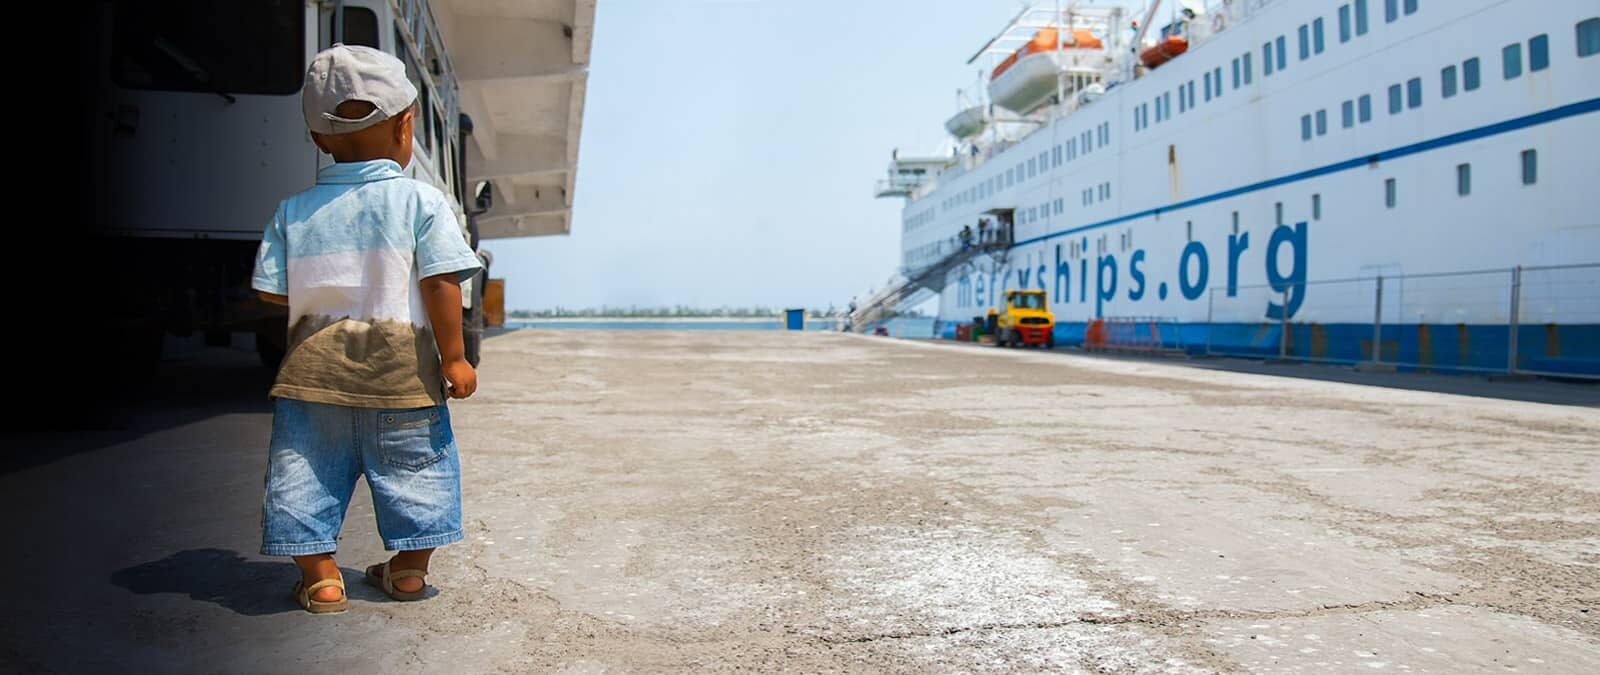 About Mercy Ships